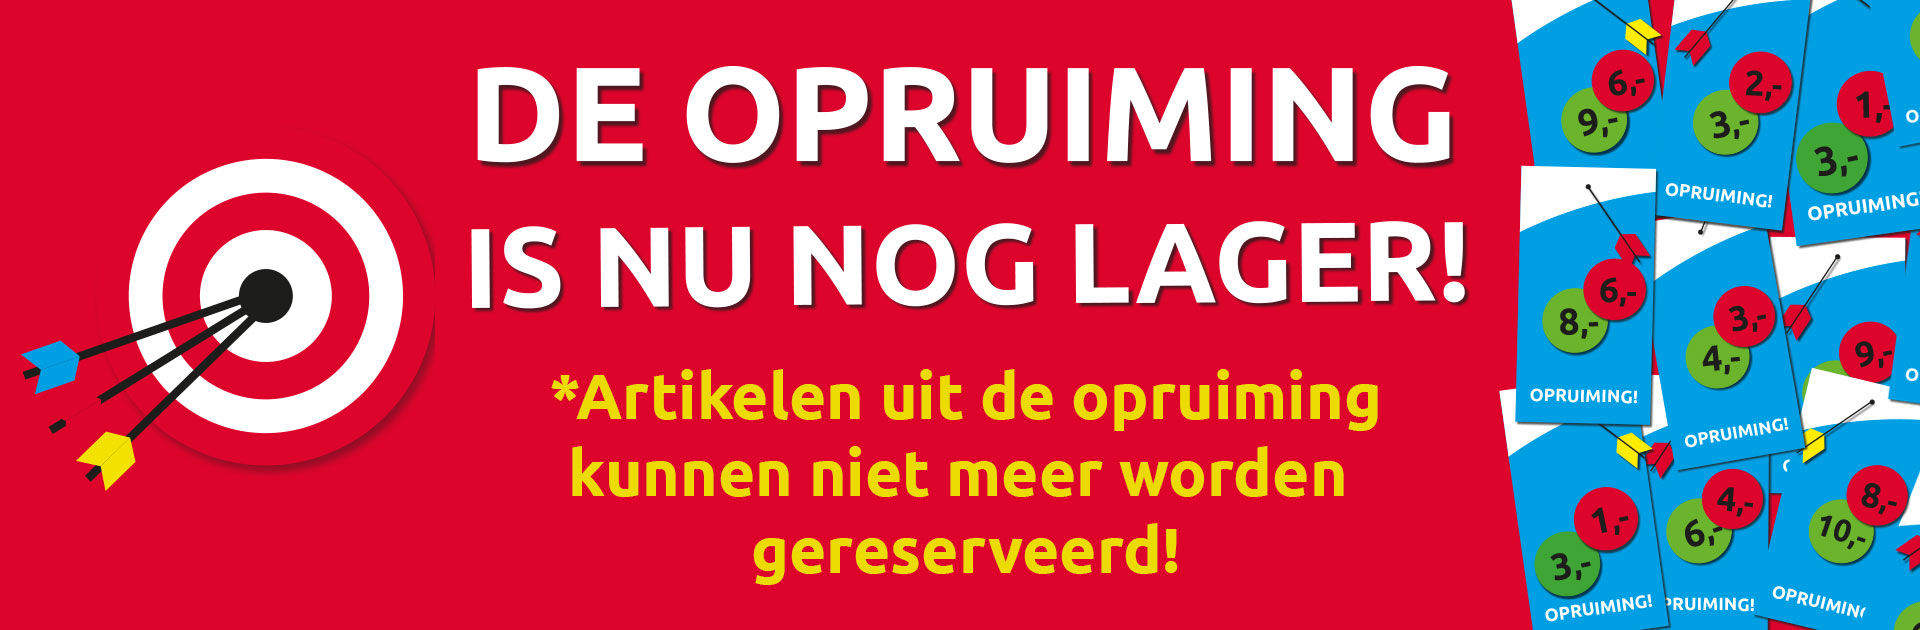 De opruiming is nu nog lager!